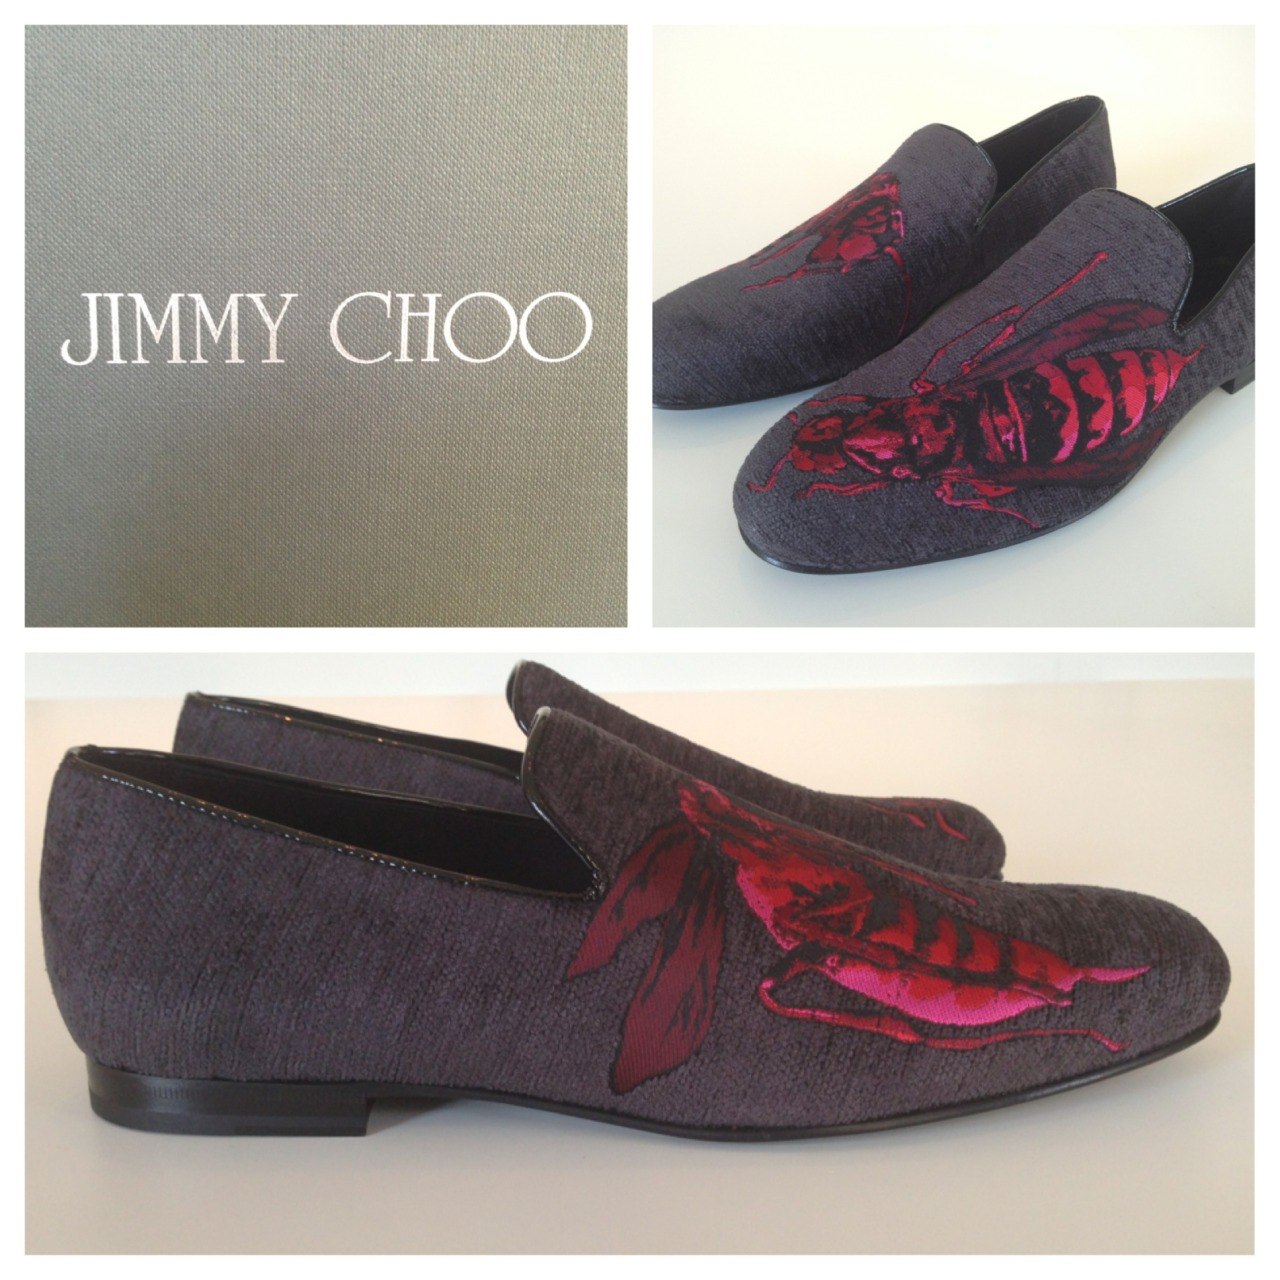 The Bee's Knees  Shop the Jimmy Choo Wasp Slipper now > http://mr-p.co/3uNdik